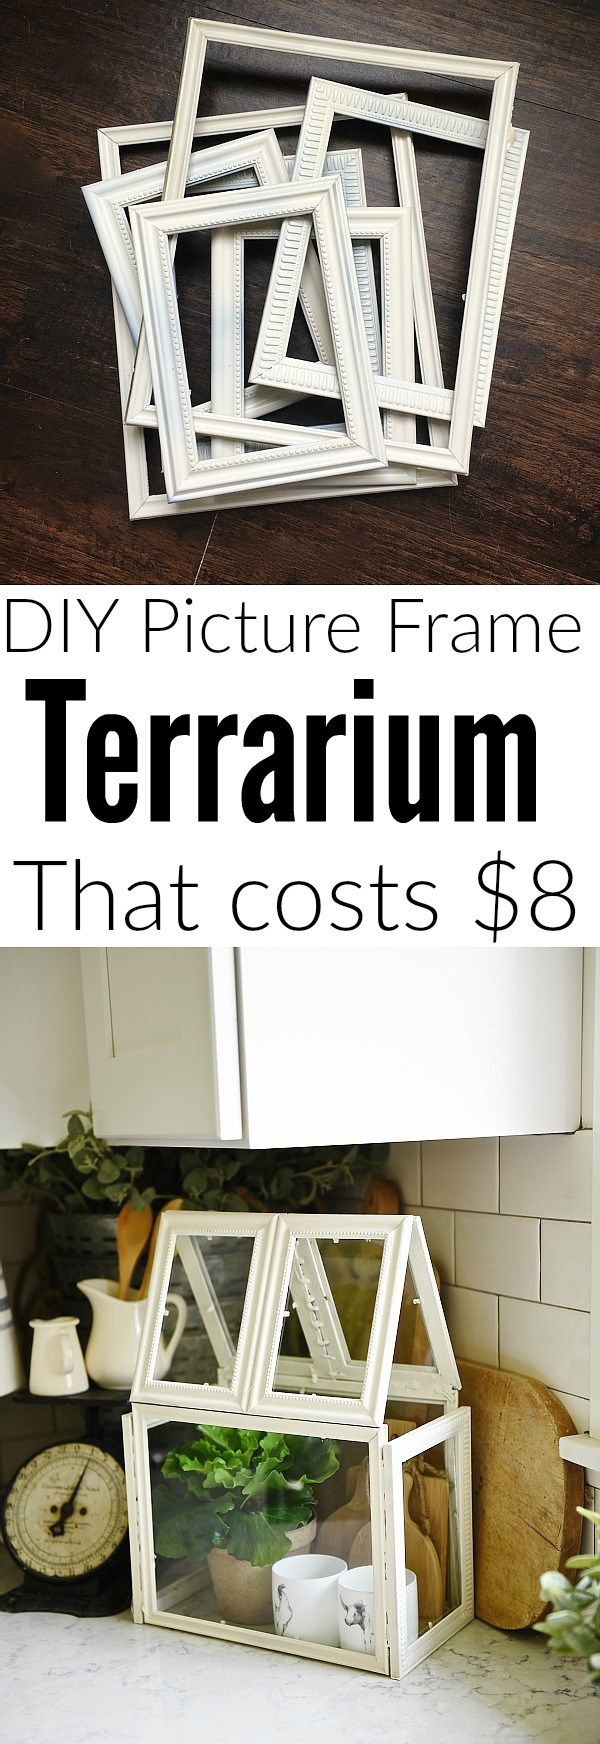 What a cute little Terrarium! Even though it is not fully enclosed it is a great bargain DIY!